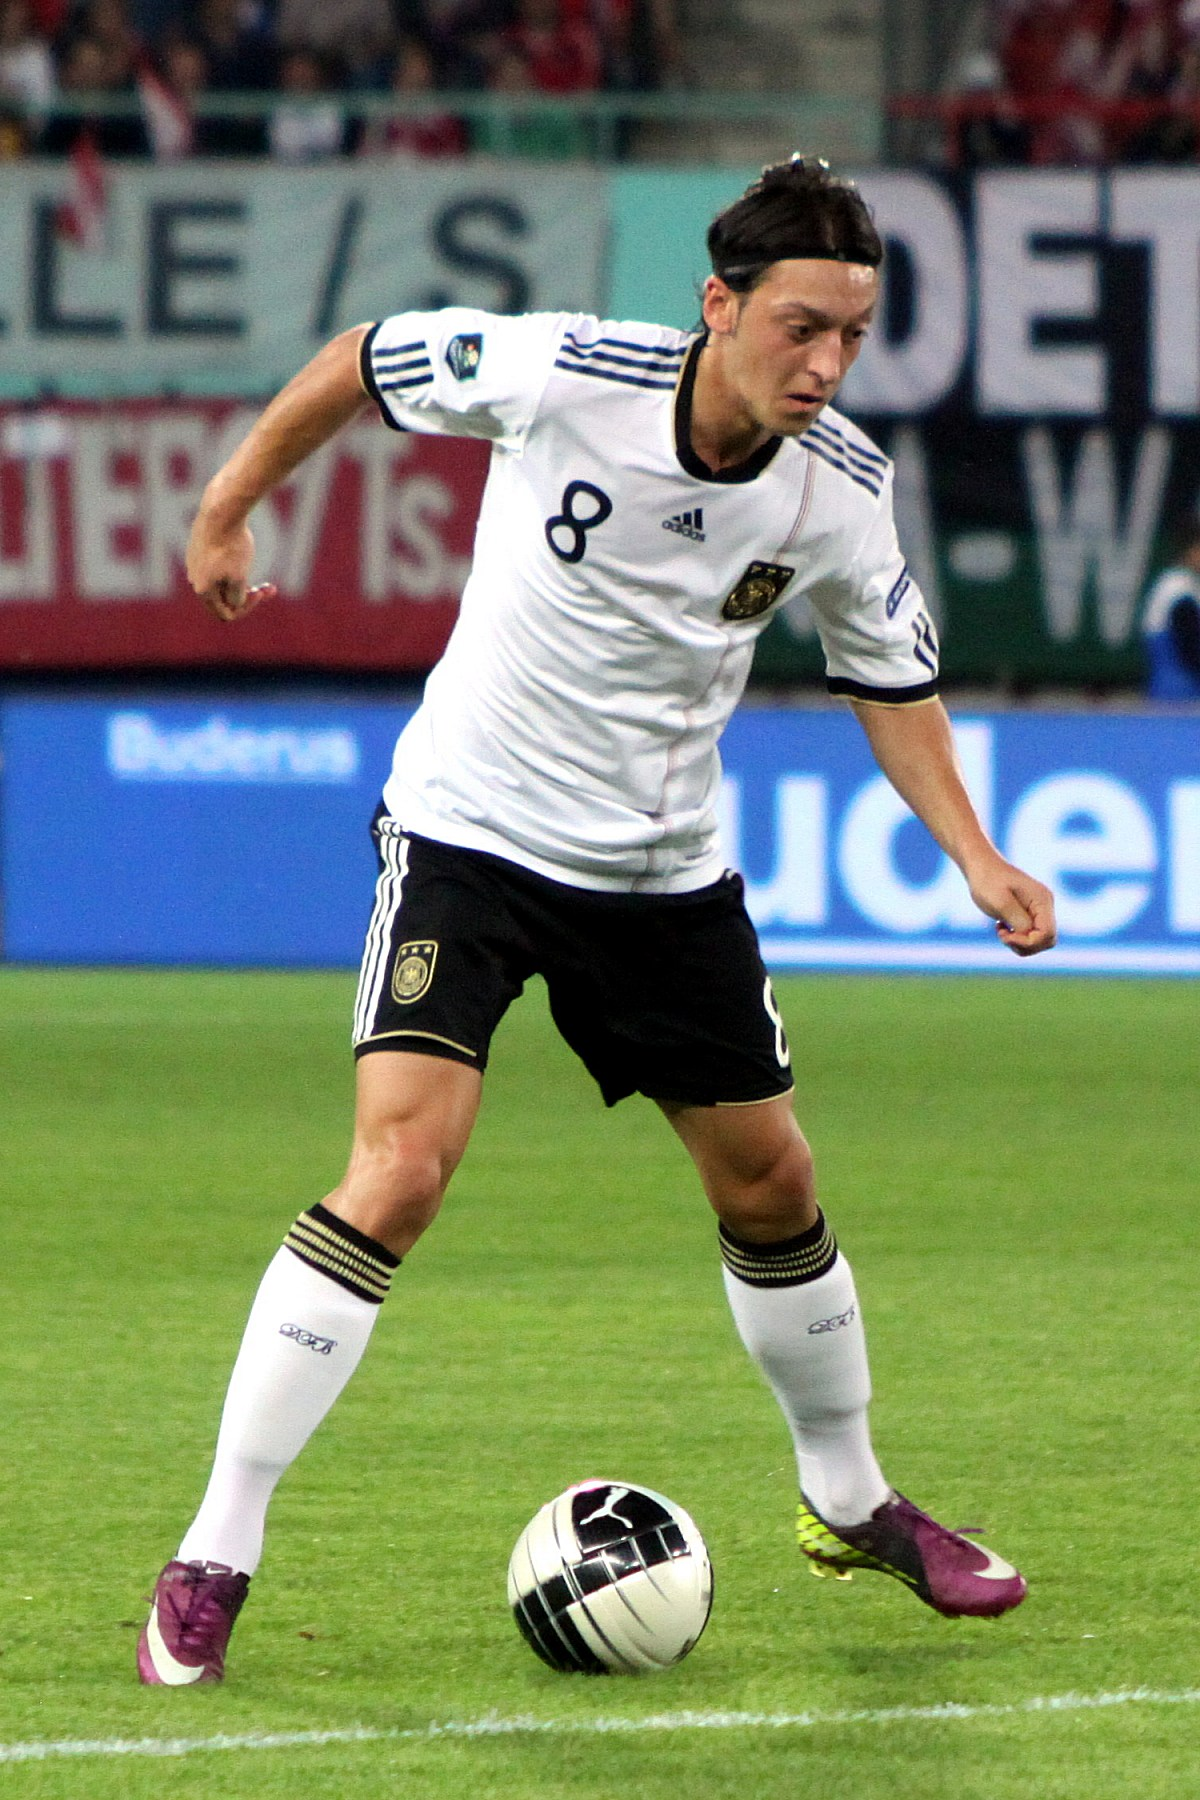 Mesut_Özil,_Germany_national_football_team_(04)